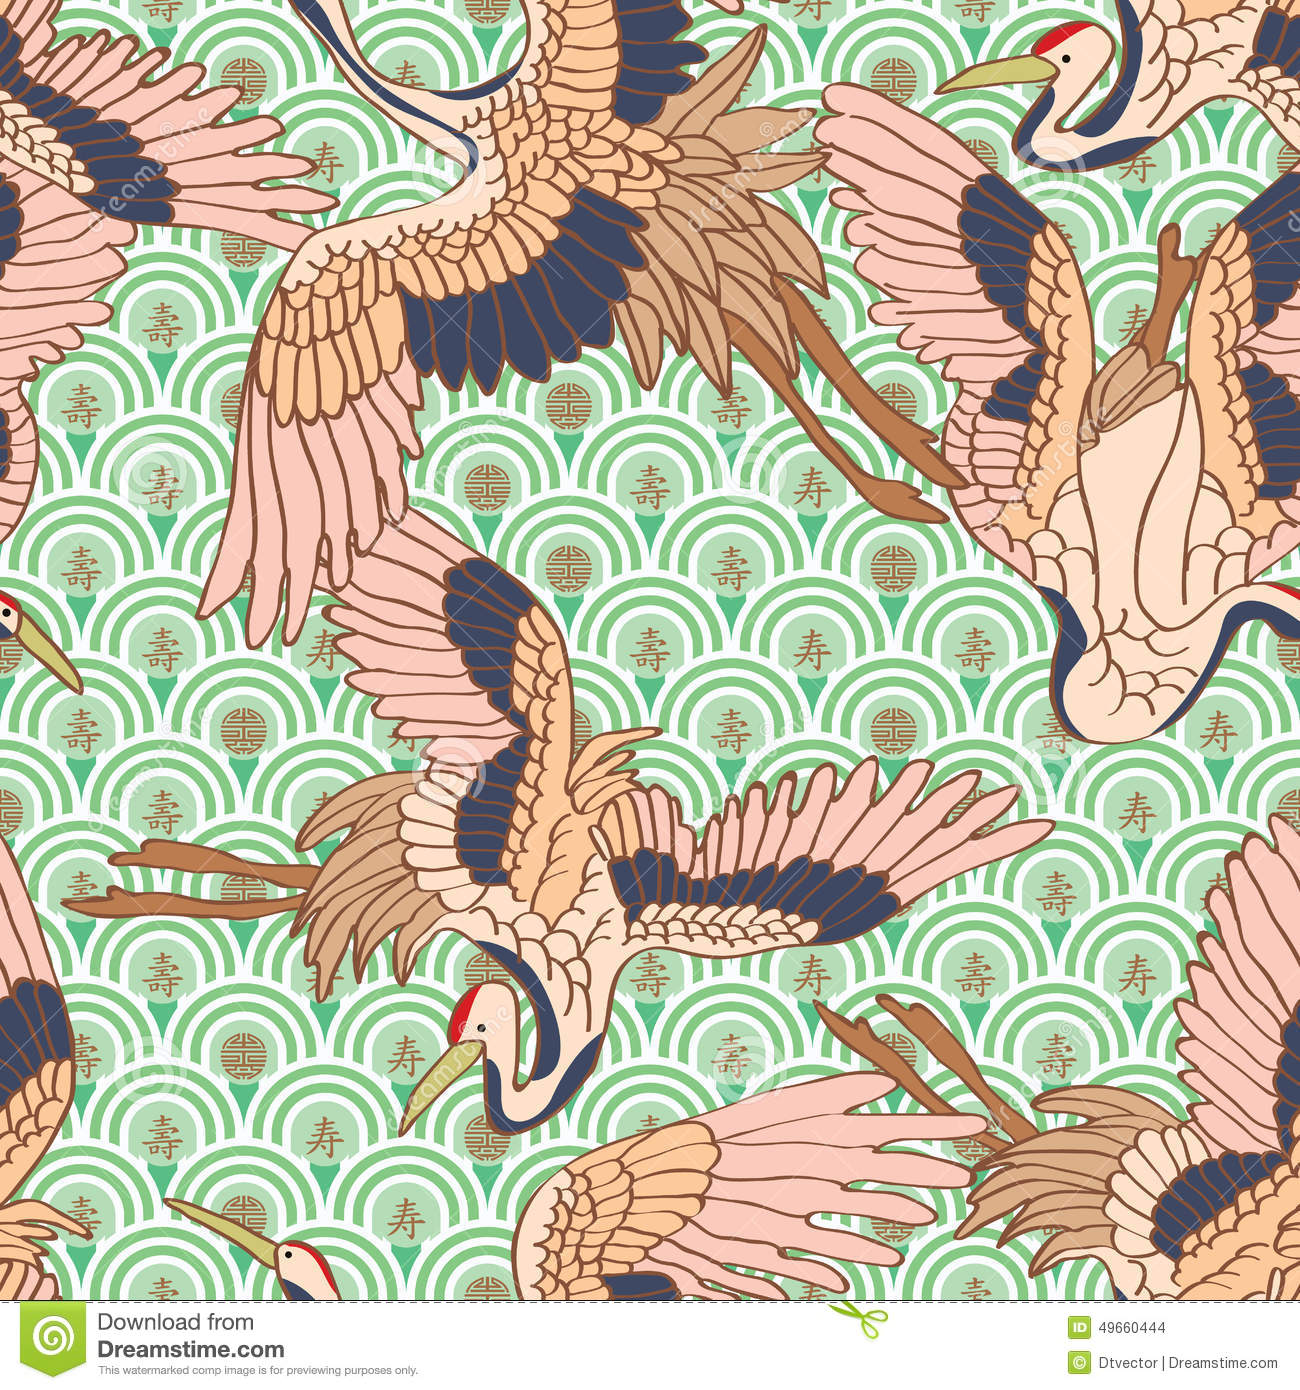 Fall Collage Wallpaper Crane Long Life Evergreen Seamless Pattern Stock Vector